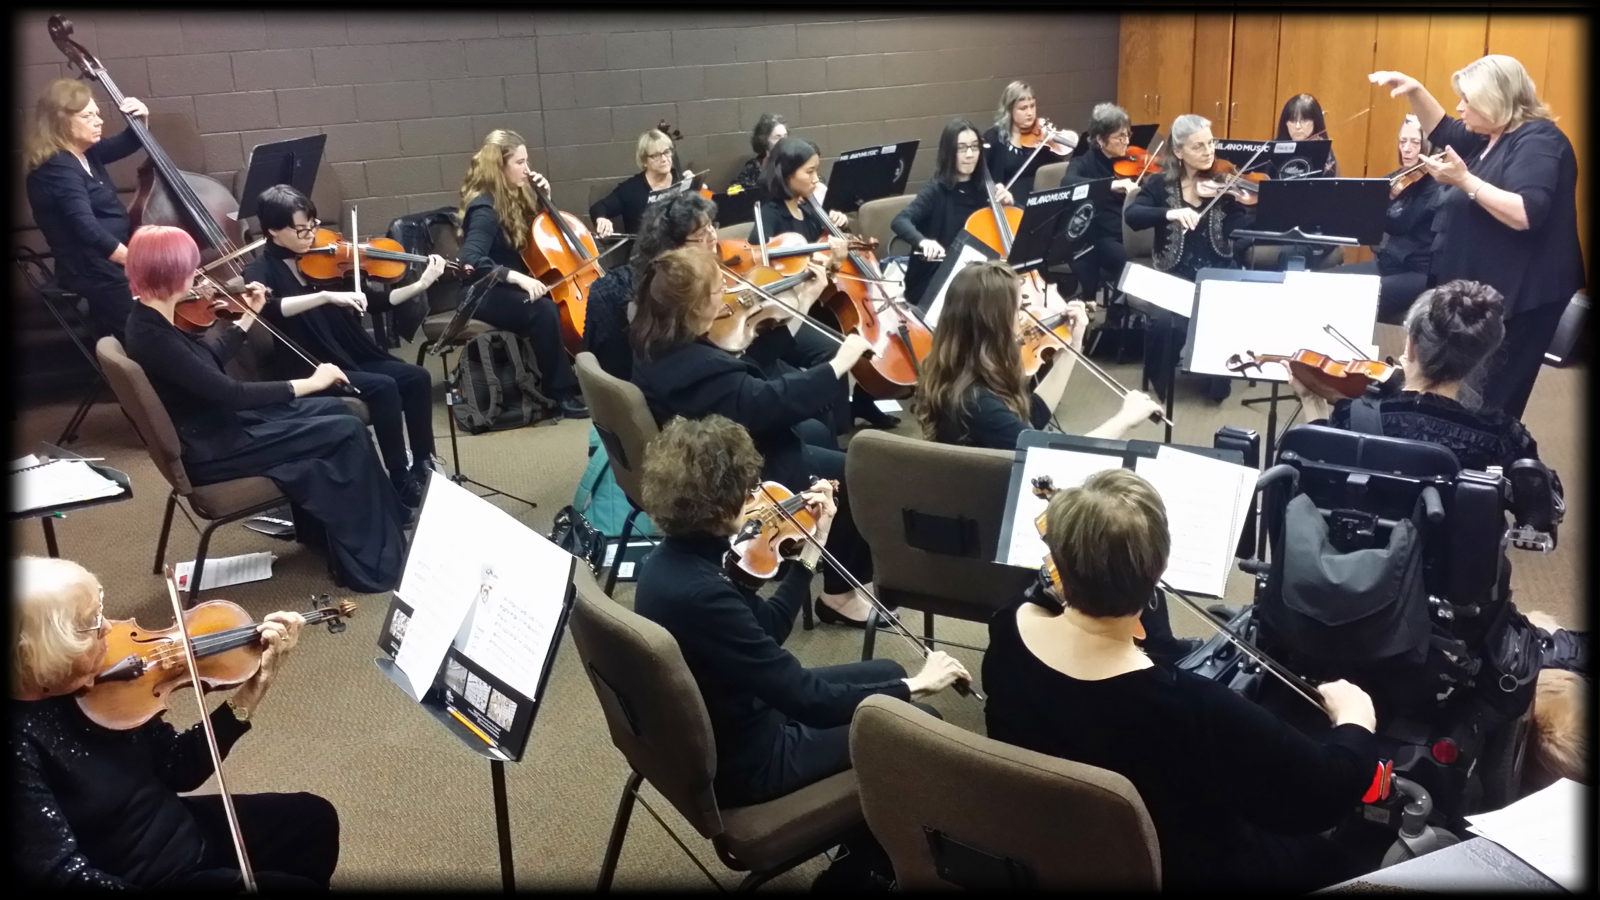 Image of WOA Women's Orchestra of Arizona musicians rehearsing with Cindy H. Petty conducting.